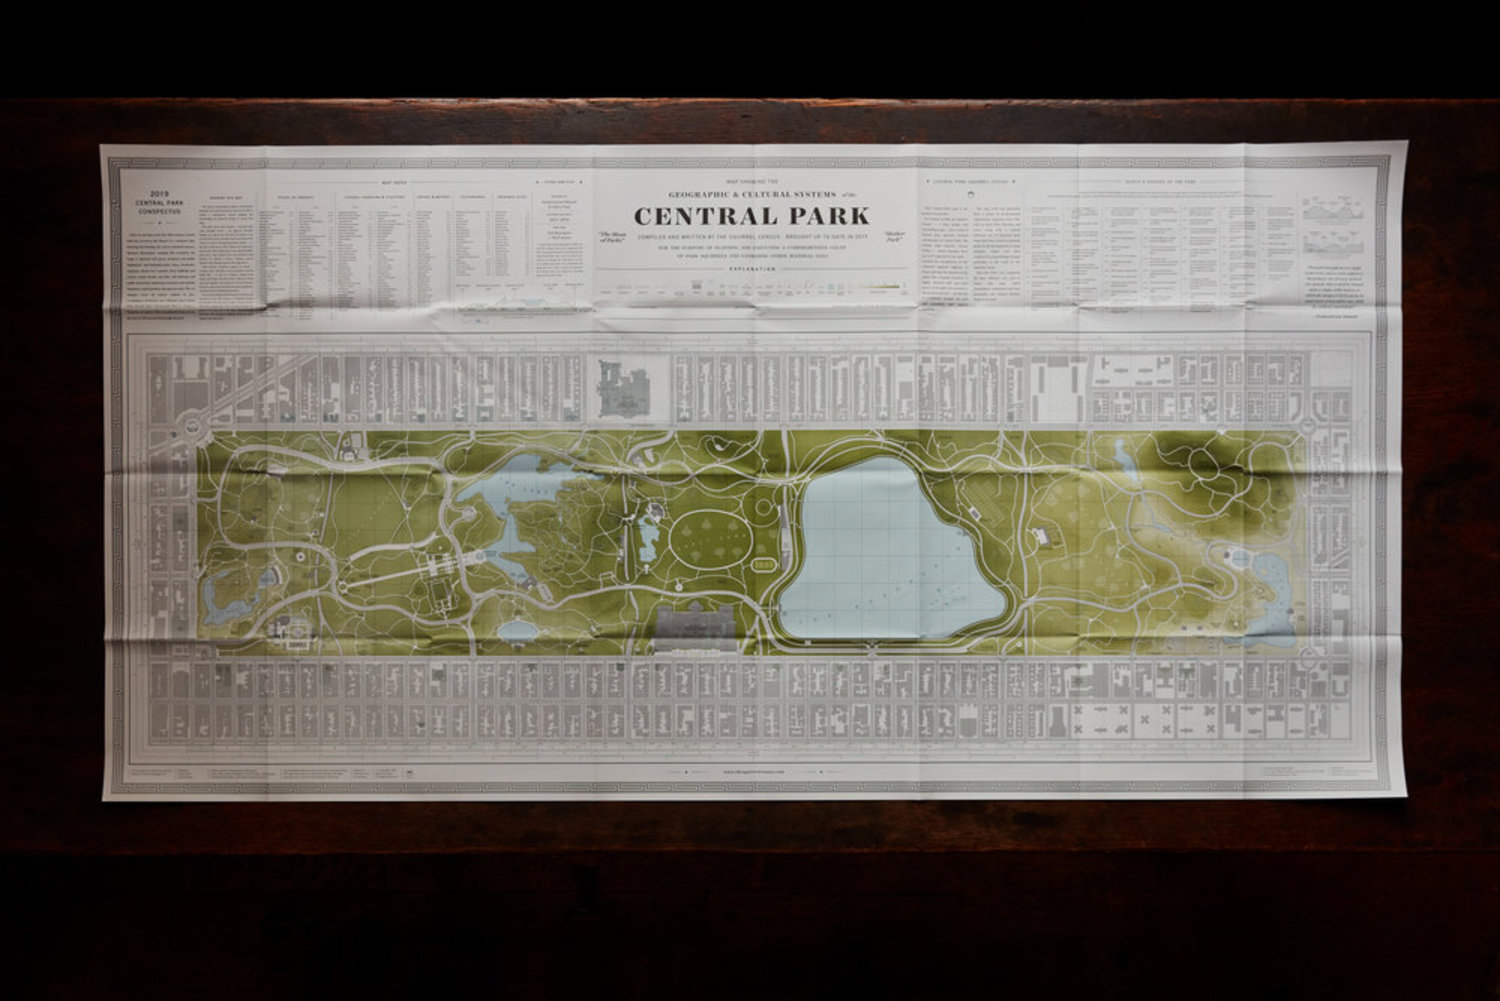 The Squirrel Census, Central Park Map